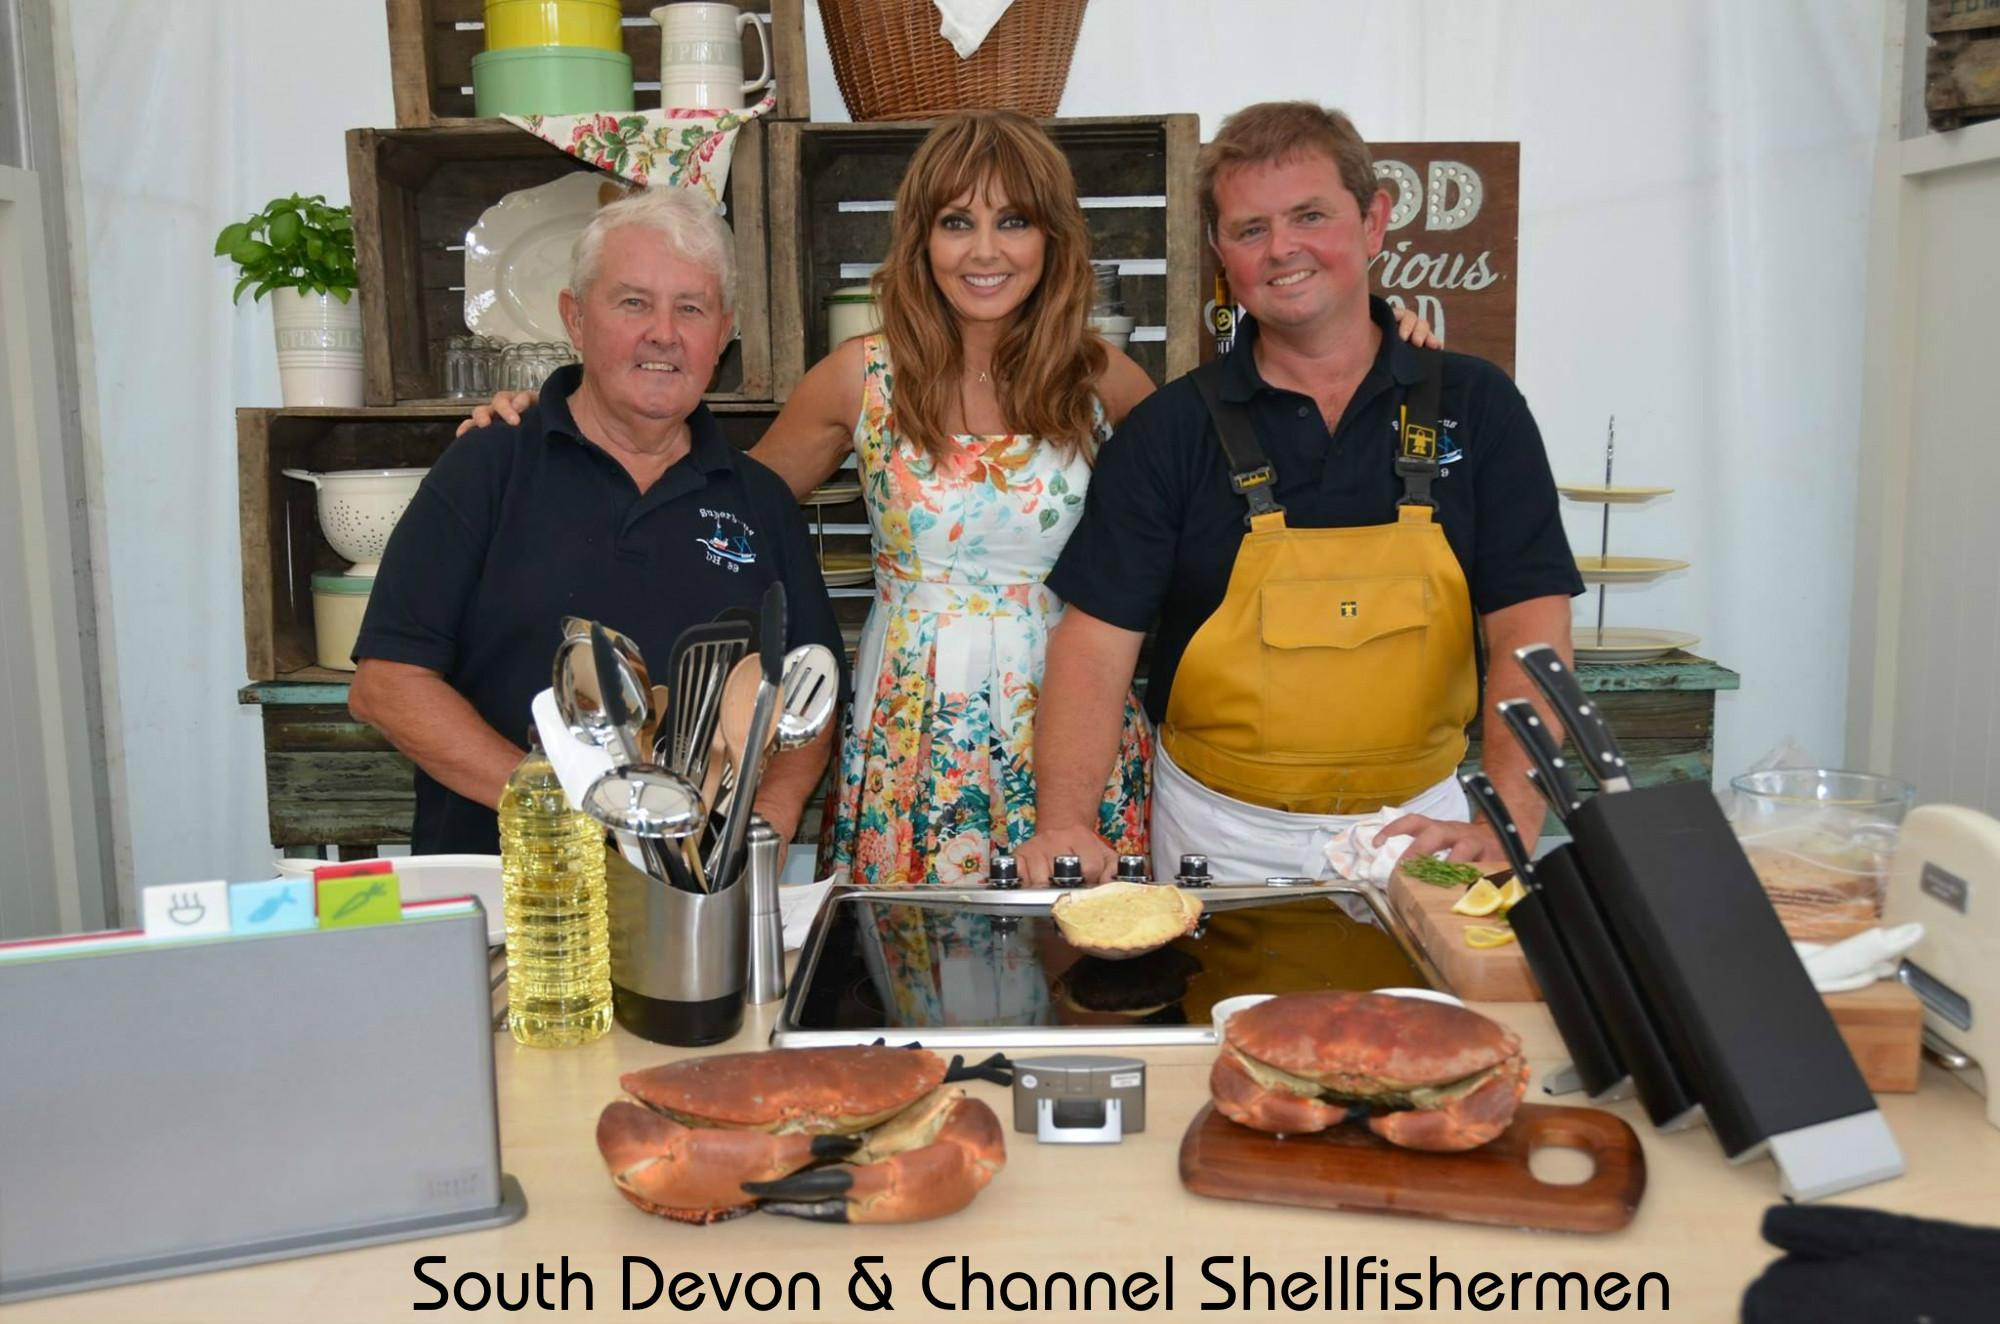 RT @SD_CShellfish: Okay, it's an old one, but we think we'd class @carolvorders as a #CatchOfTheDay @NFFO_UK  :) http://t.co/9oGlfM0EDs